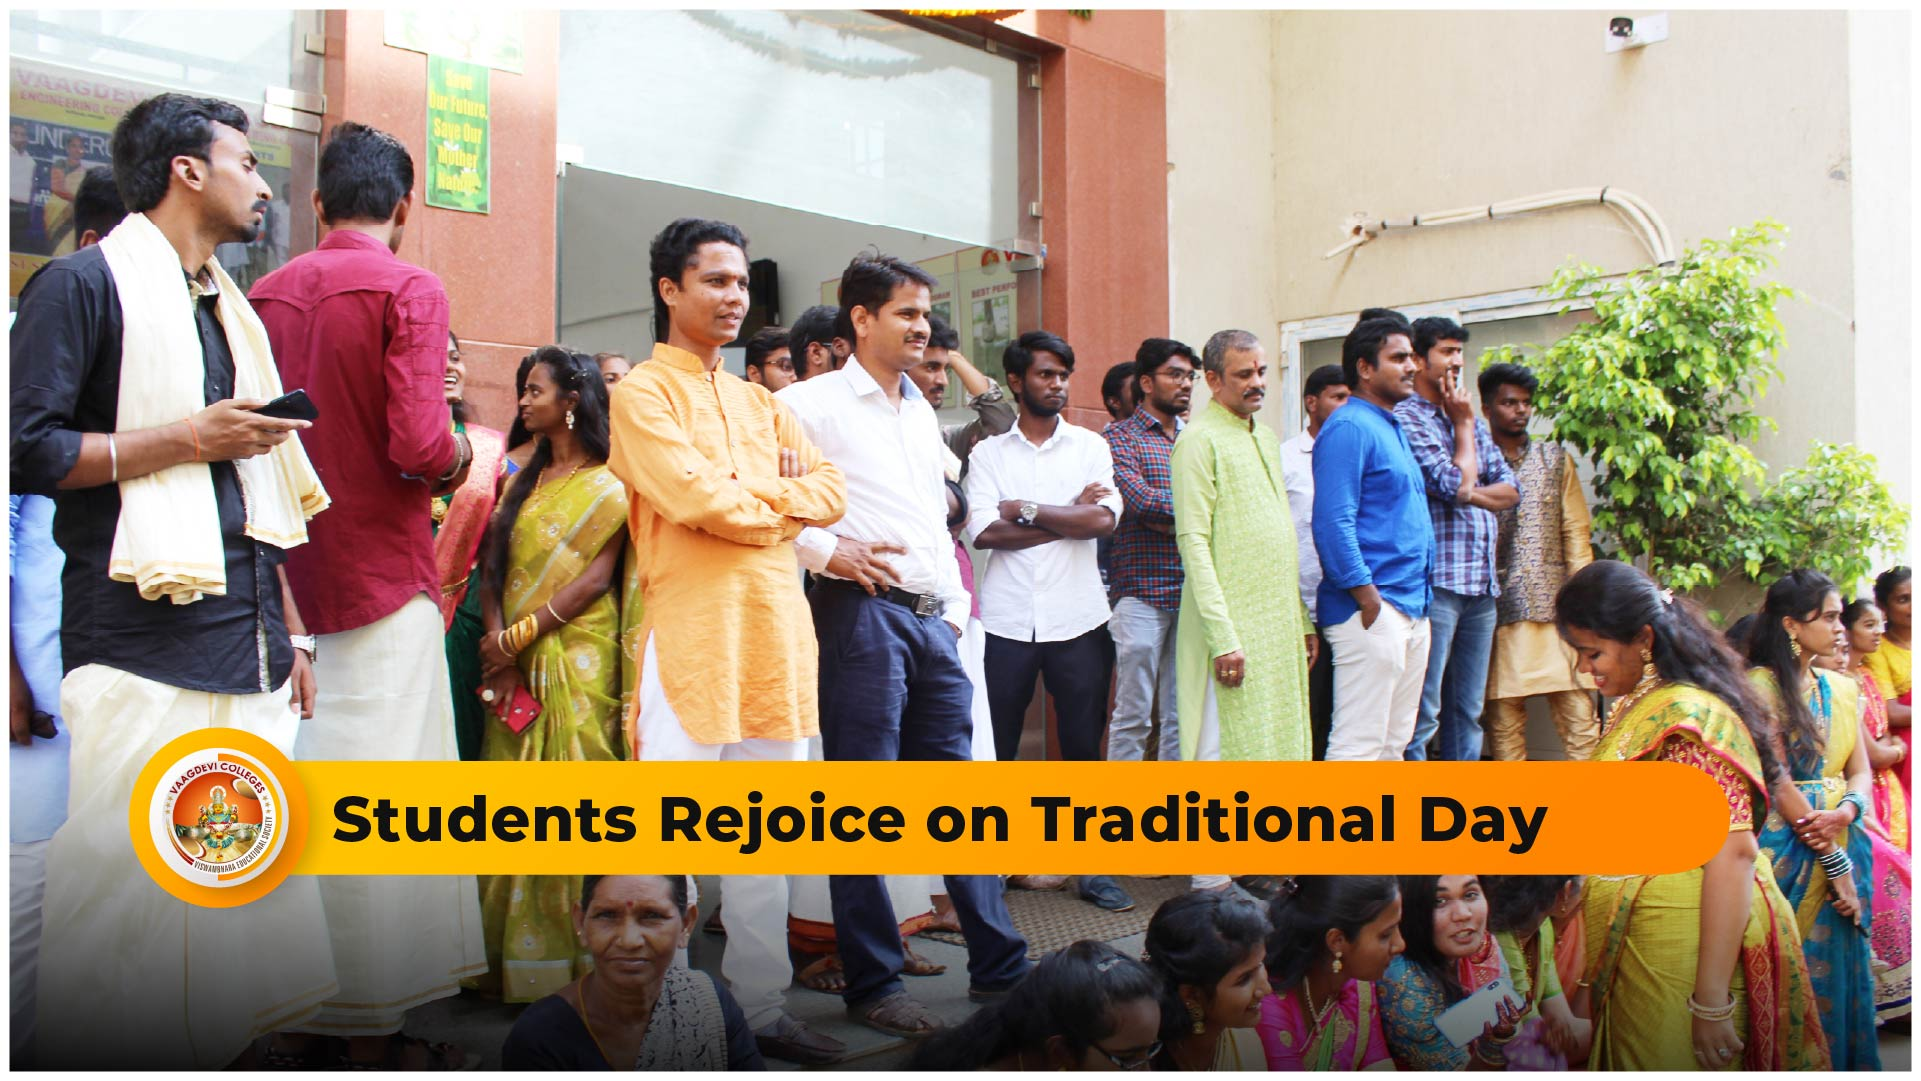 Students Rejoice on Traditional Day